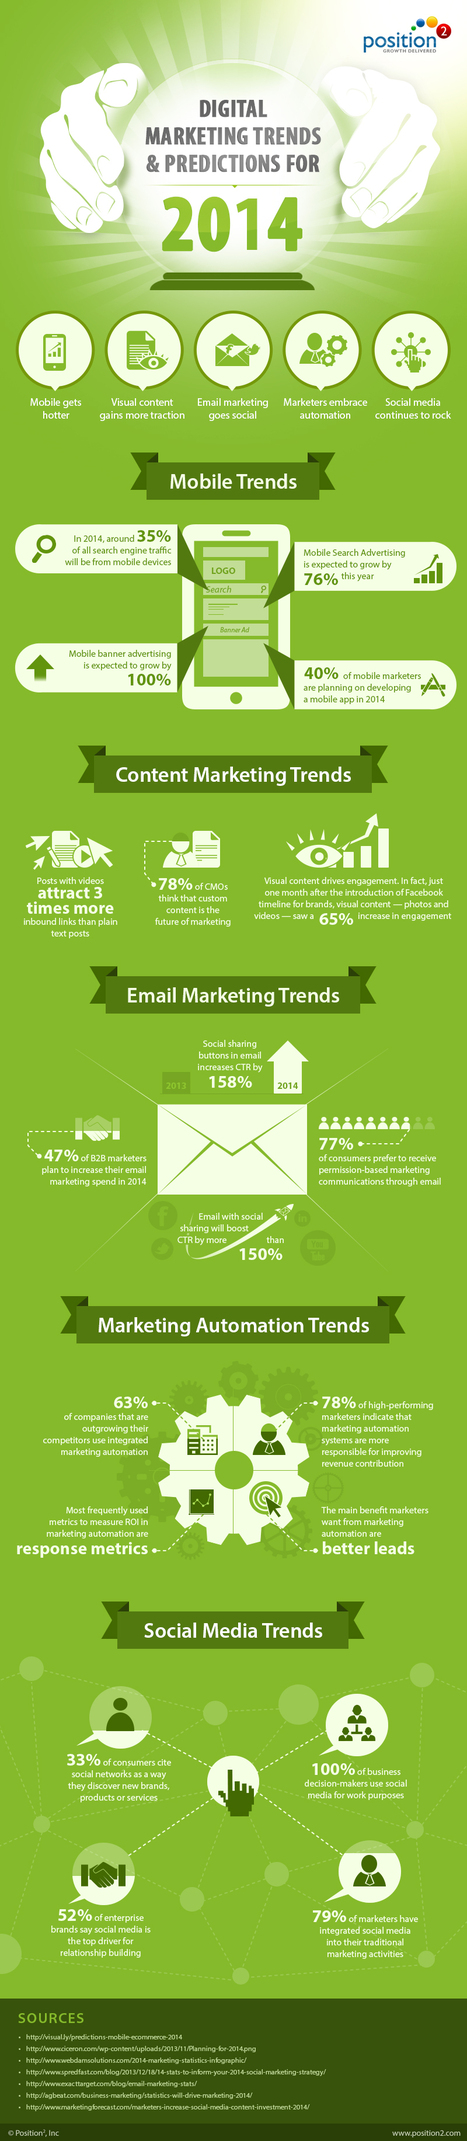 [Infographic] Digital Marketing Trends & Predictions for 2014 | Position² | #TheMarketingAutomationAlert | Fashion blog | Scoop.it